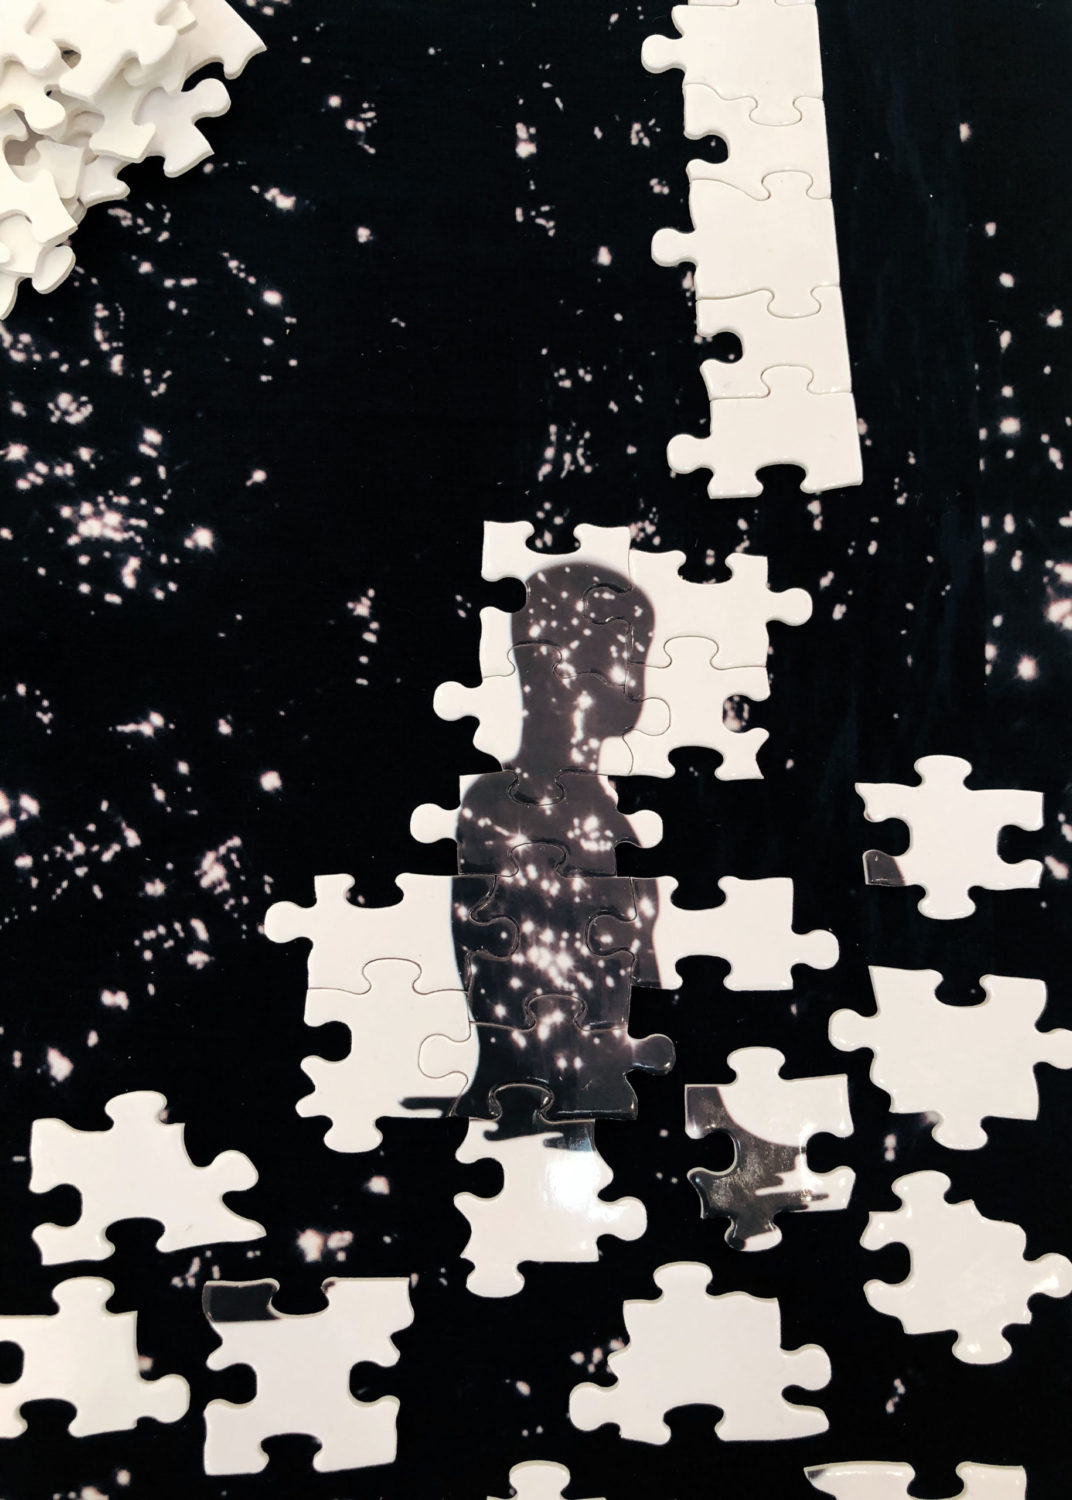 Black background with spotted light leeks (white) An unfinished puzzle is in the foreground. There is a human figure in black made printed on the white puzzle